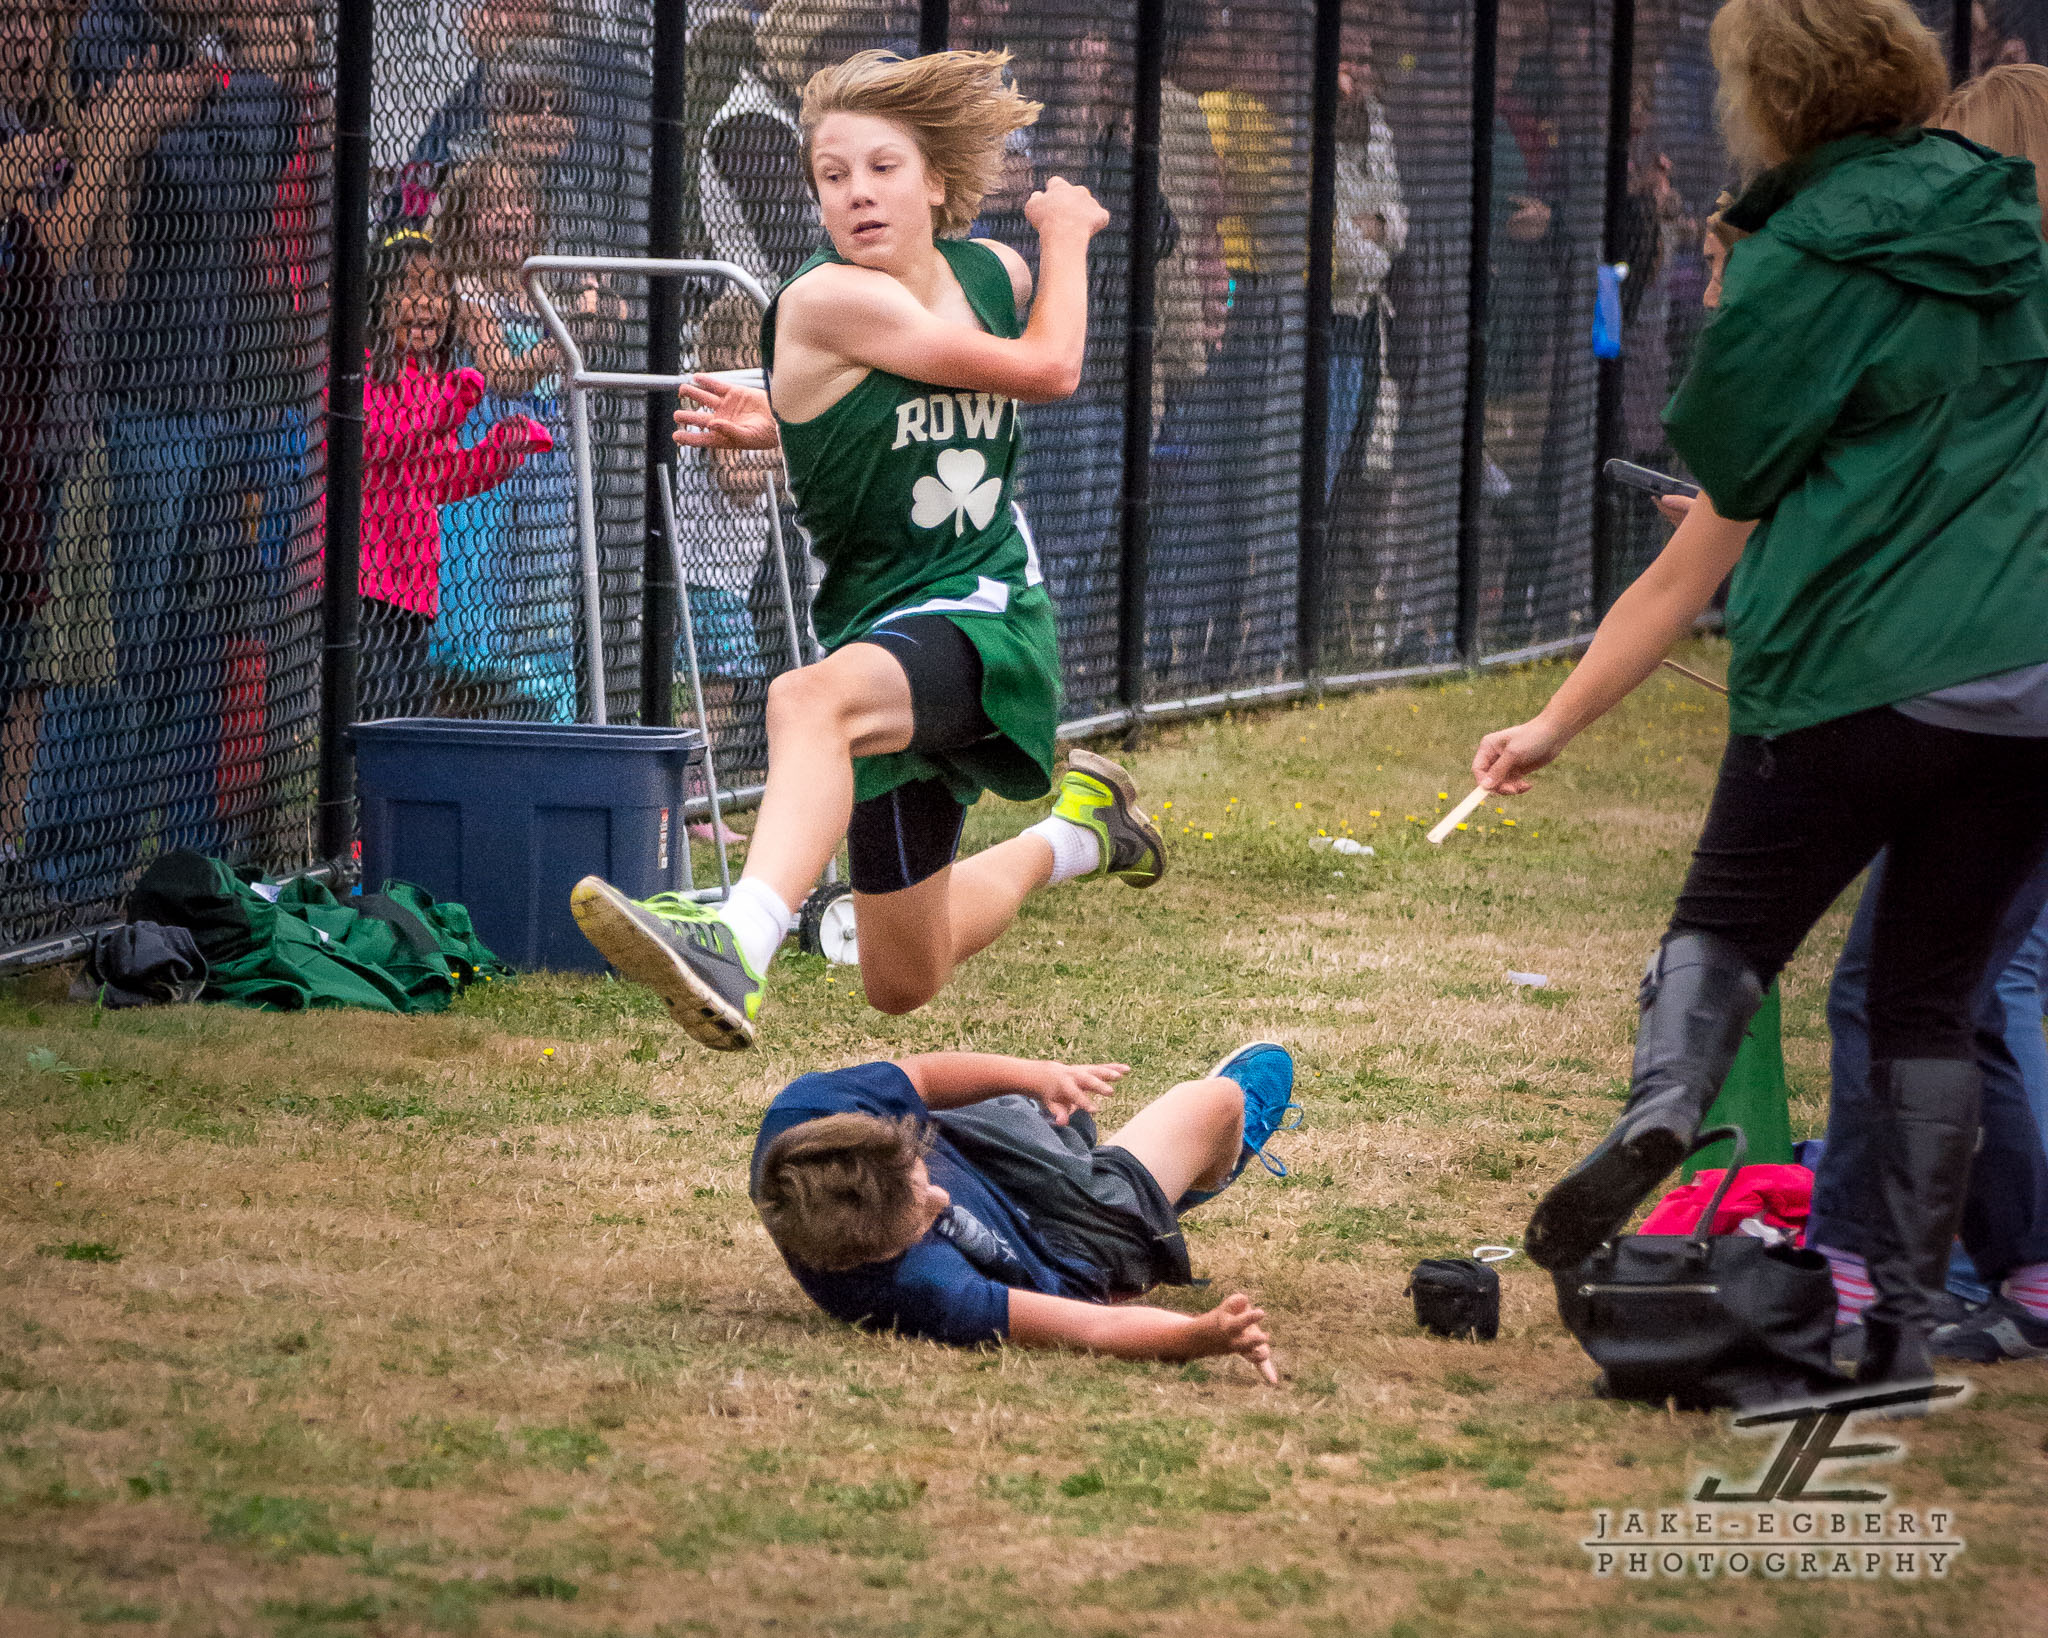 September 24, 2014 - Meet One of the 2014 season took place at Happy Valley Middle School. Click through to see the favorites gallery and for the link to the storefront and the entire photo collection.